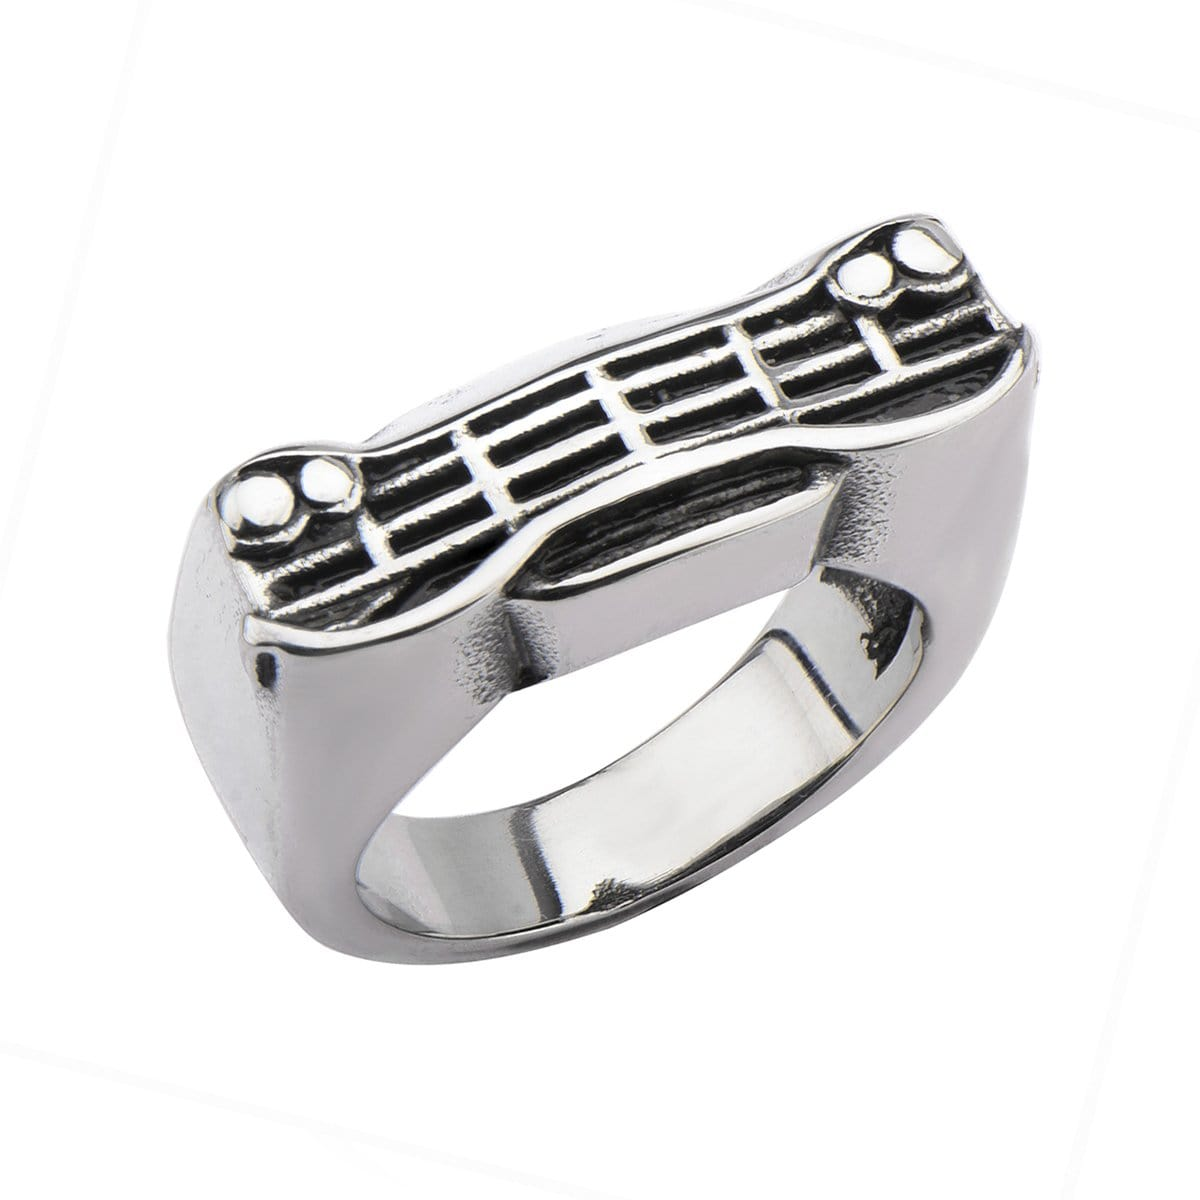 Darkened Silver Stainless Steel Classic Car Grille Ring